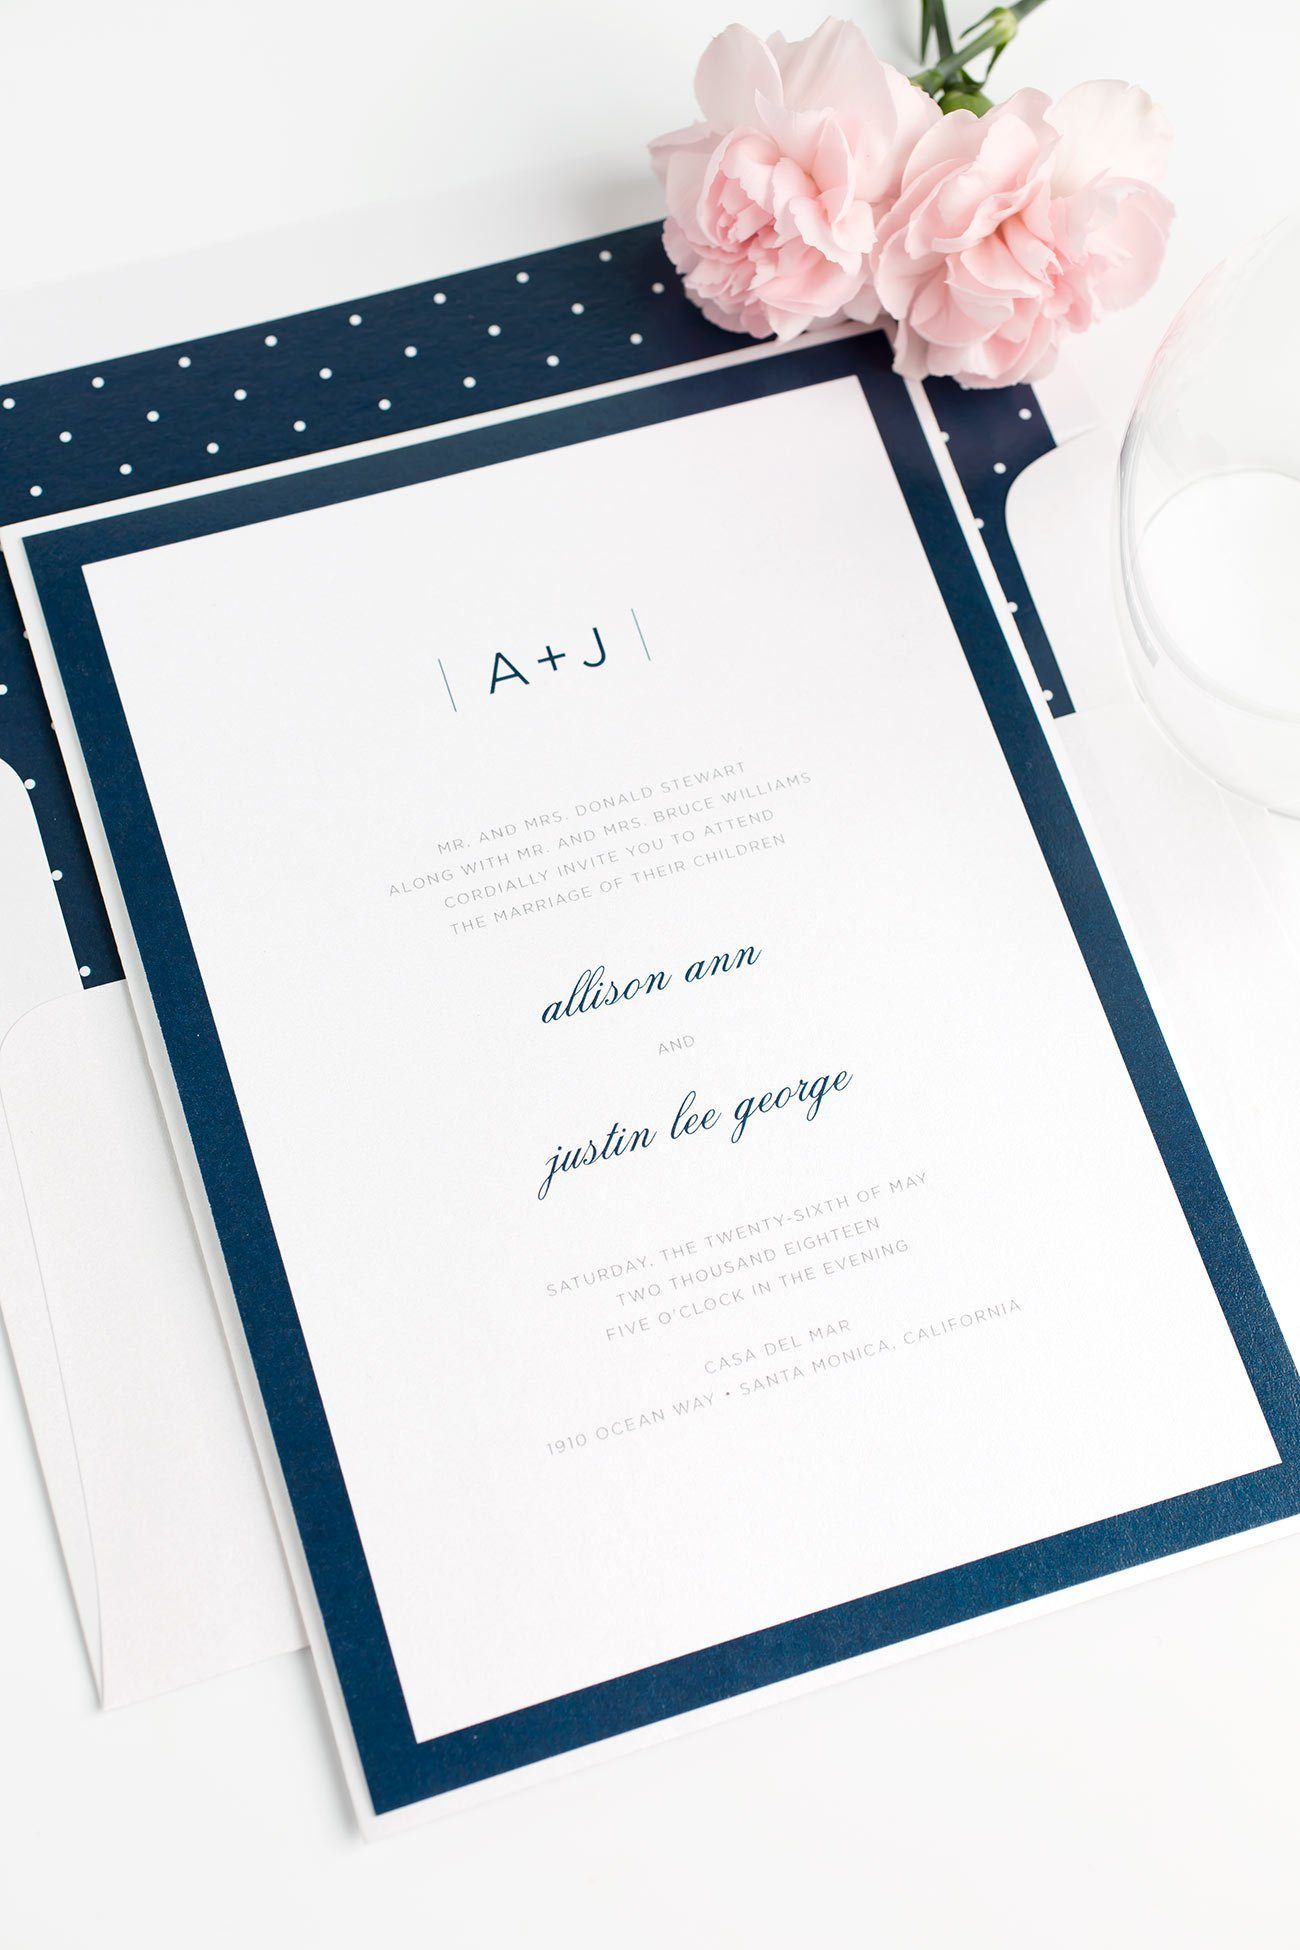 Modern Navy Blue Wedding Invitations with a Monogram and Borders